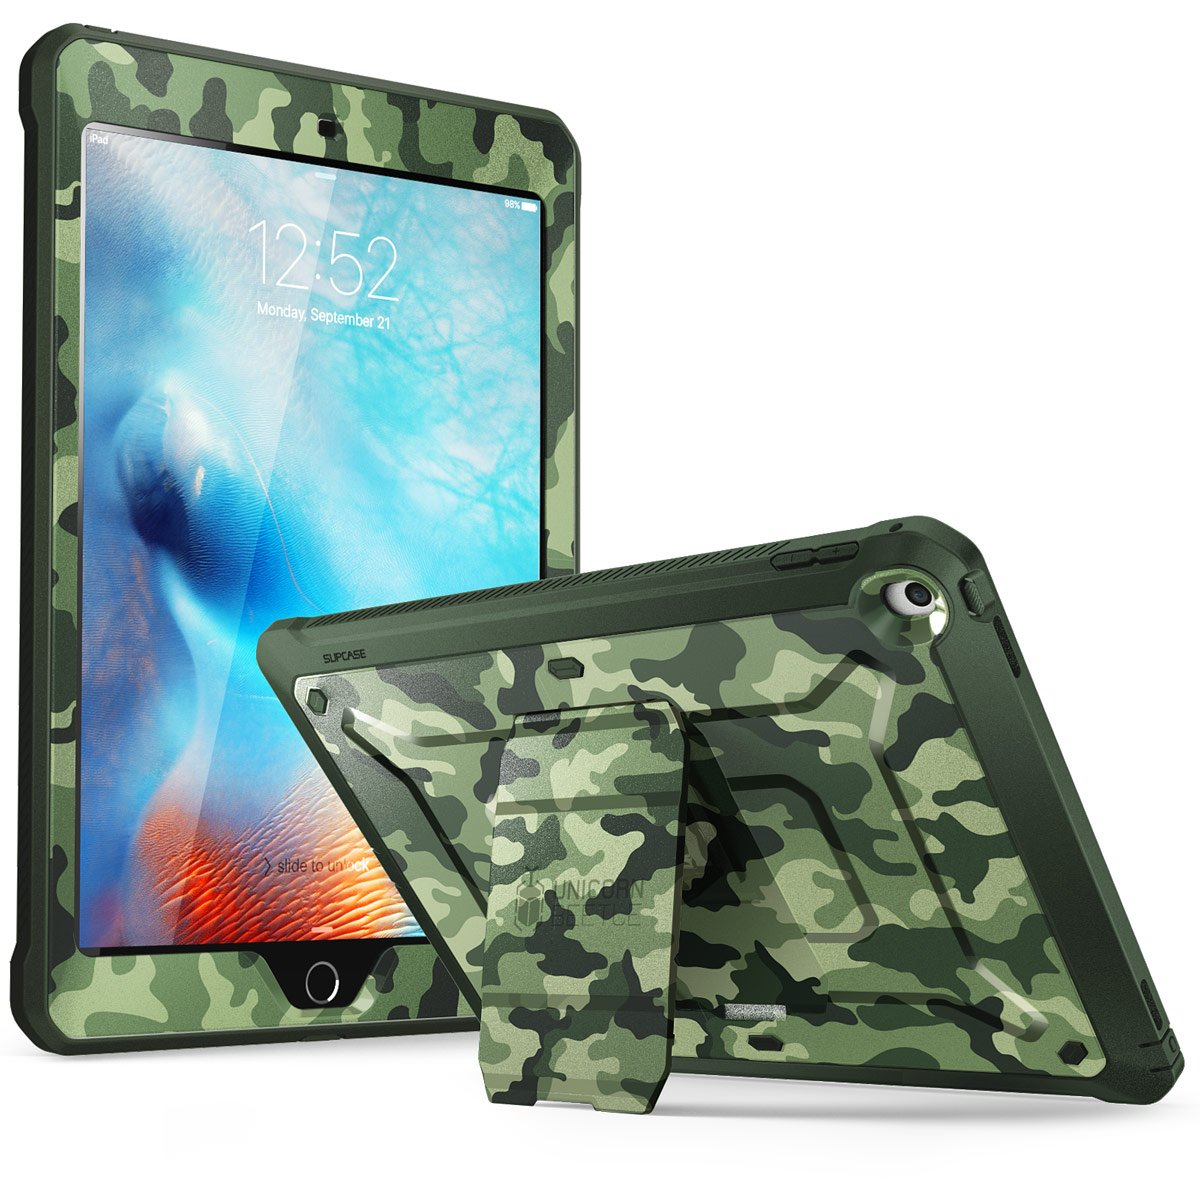 Unicorn Beetle PRO Series Heavy Duty Supcase iPad 9.7 Case 2018 // 2017 Black Full-body Rugged Protective Case with Built-in Screen Protector /& Dual Layer Design for Apple iPad 9.7 inch 2017 // 2018